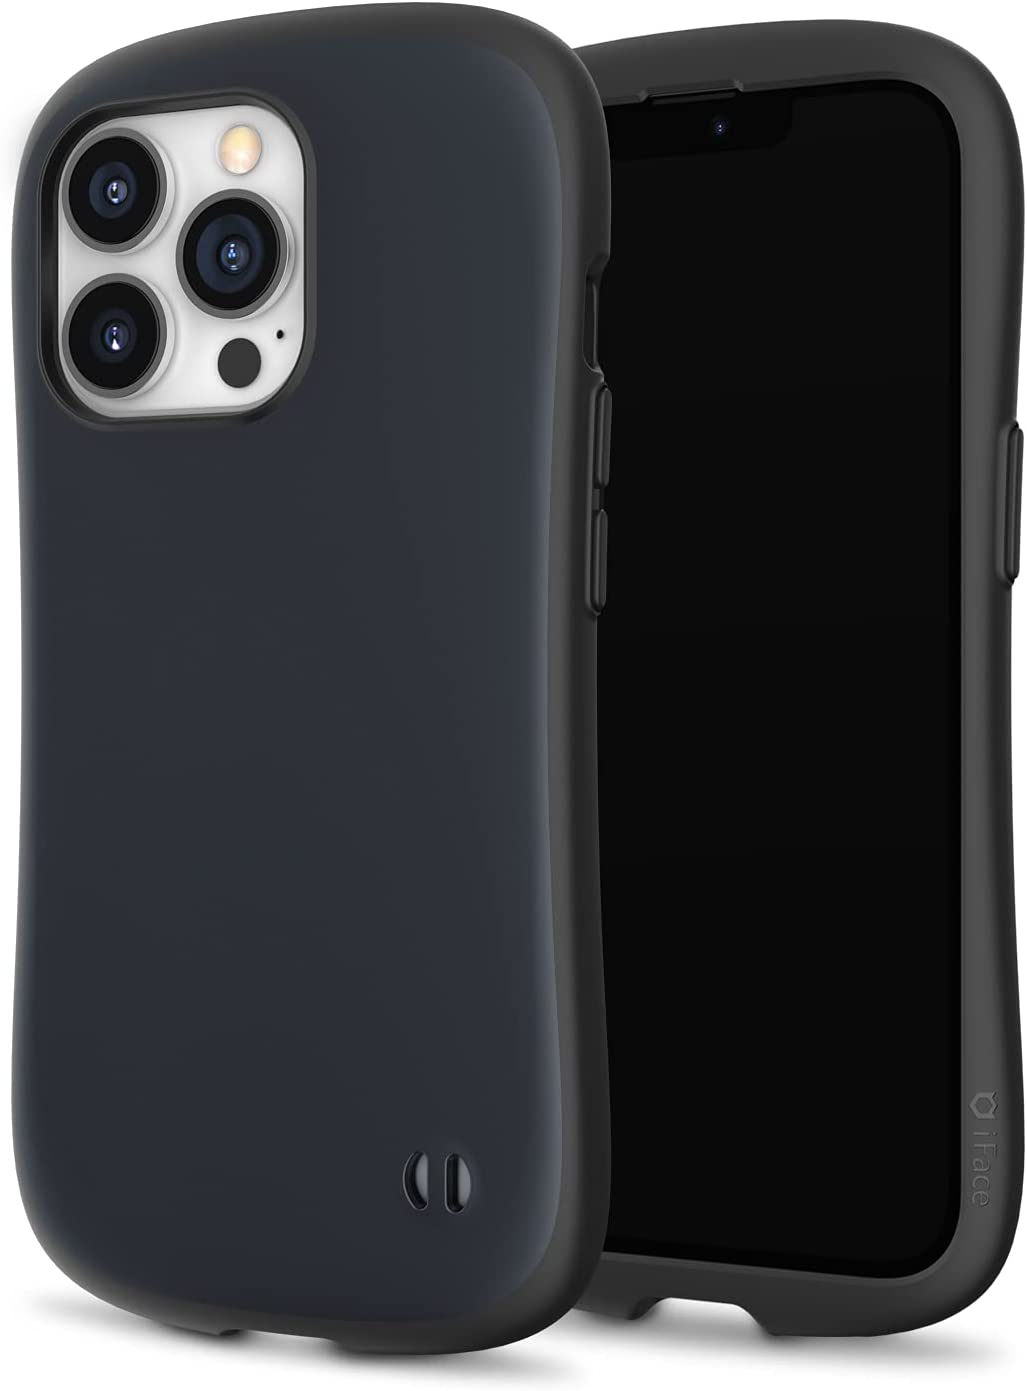 iFace First Class Kusumi Series Designed for iPhone 13 Pro - Soft Light Pastel Aesthetic Colors // Cute Shockproof Dual Layer [Hard Shell + Bumper] Phone Case [Drop Tested] - Black